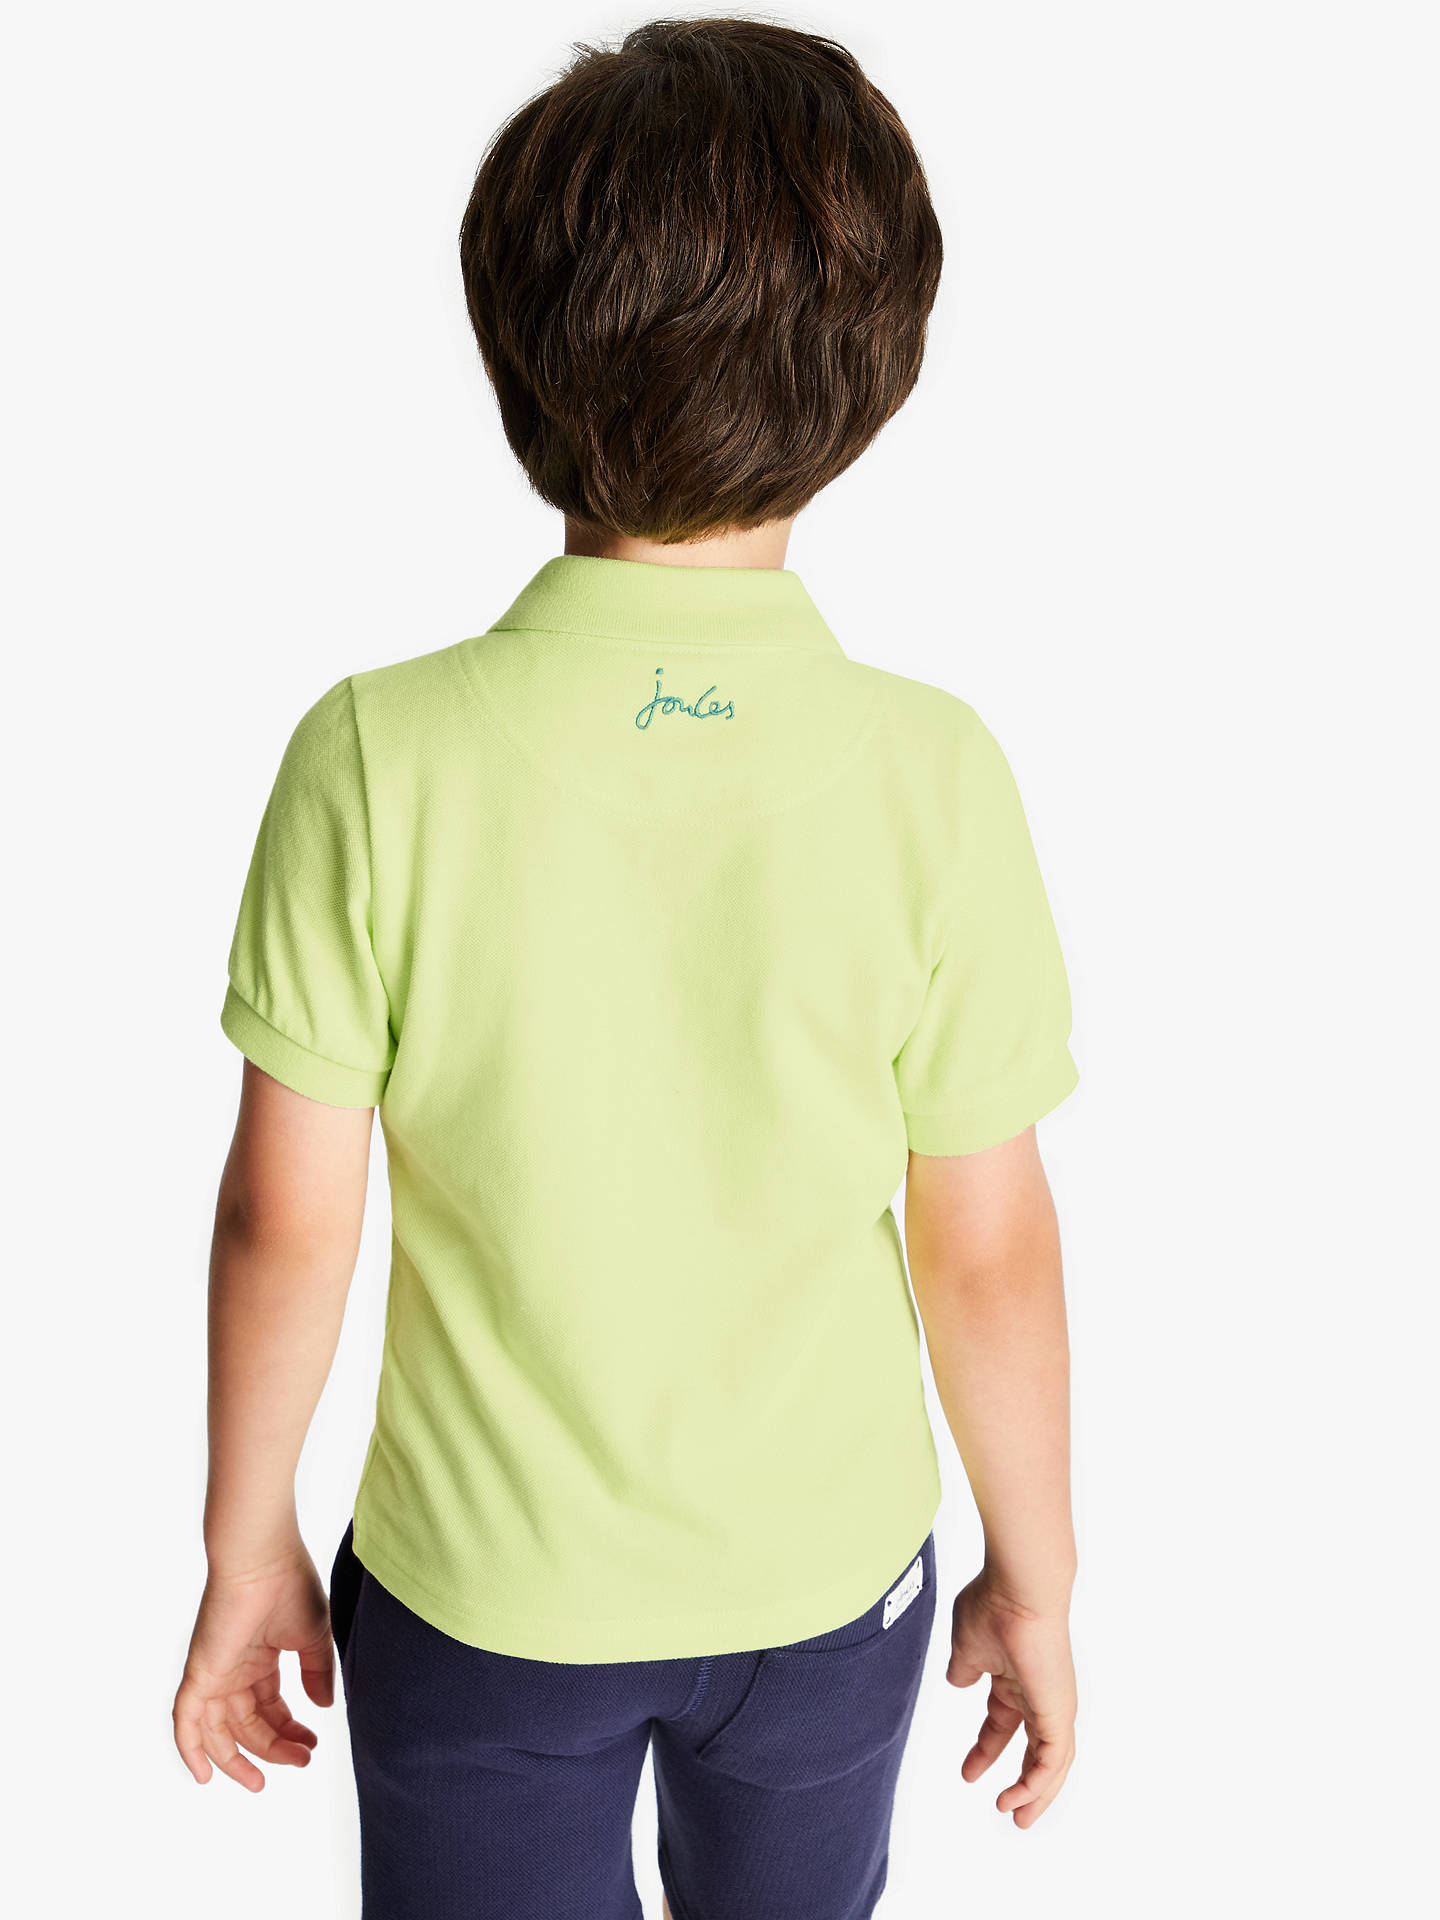 86ed3e5f2 ... Buy Little Joule Boys' Polo Shirt, Lime Green, 4 years Online at  johnlewis ...